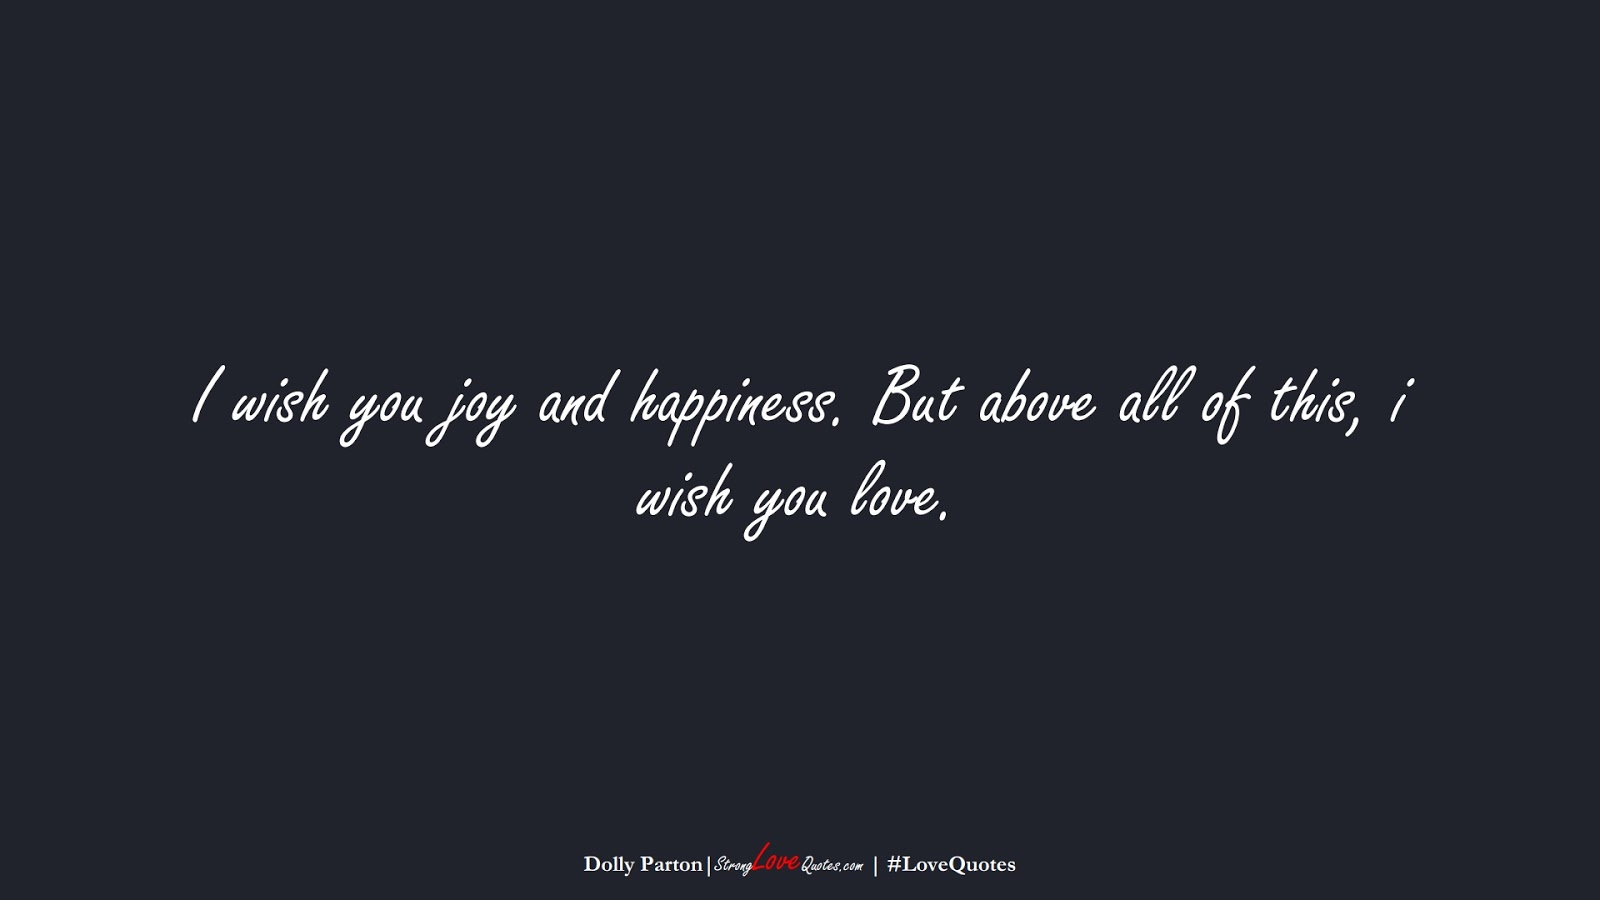 I wish you joy and happiness. But above all of this, i wish you love. (Dolly Parton);  #LoveQuotes